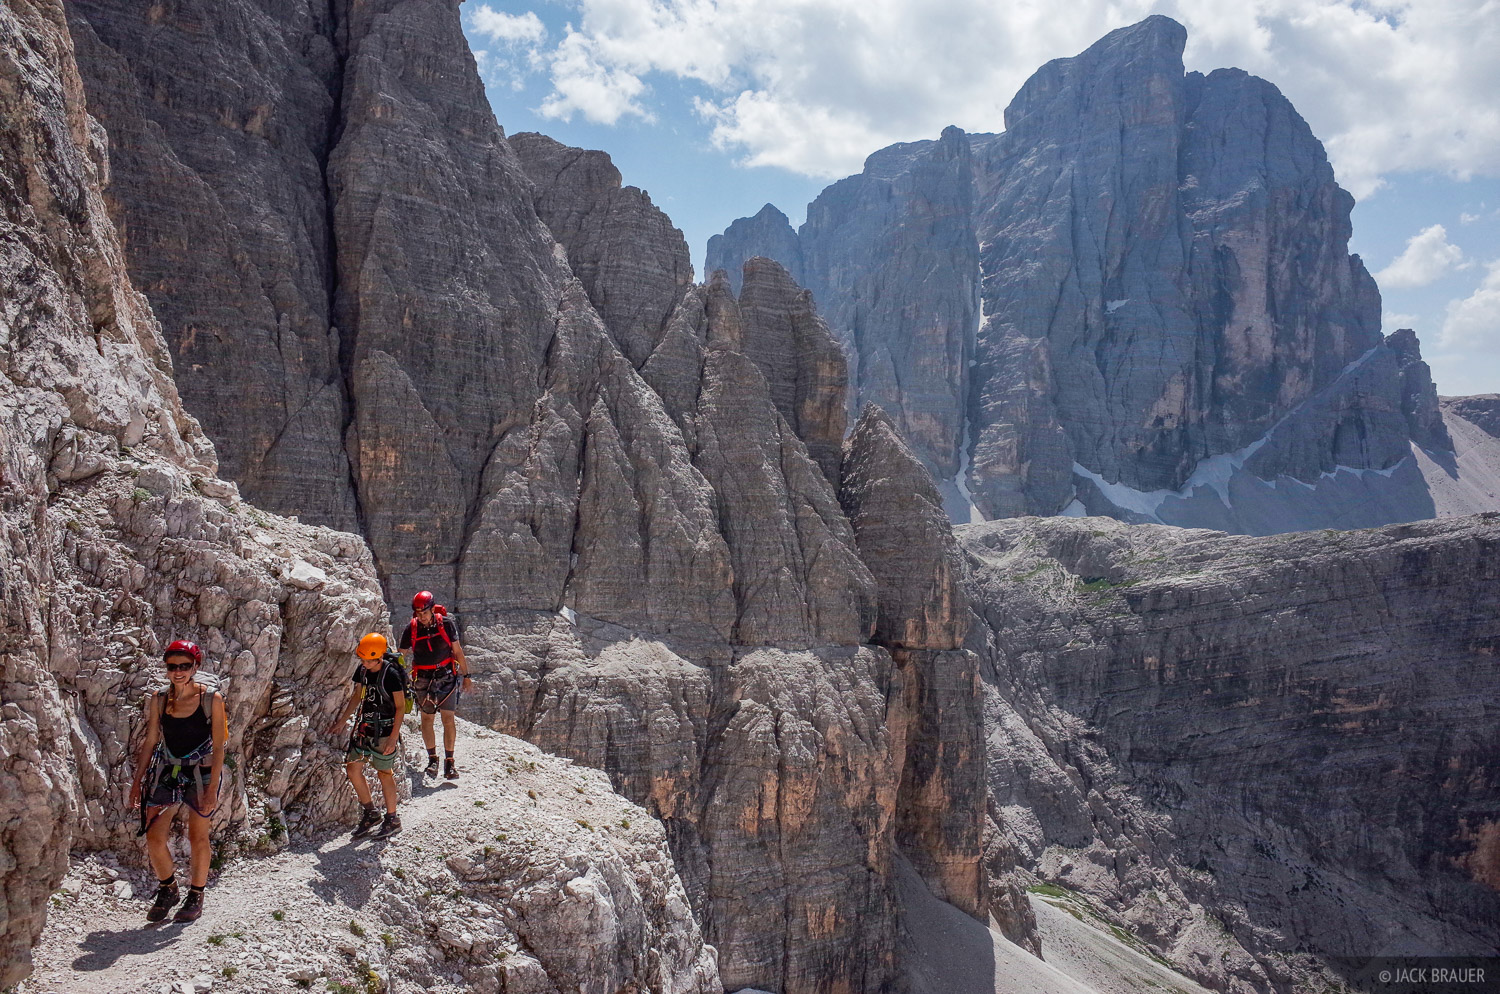 Dolomites, Italy, via ferrata, Strada degli Alpini, Zwolferkofel, photo